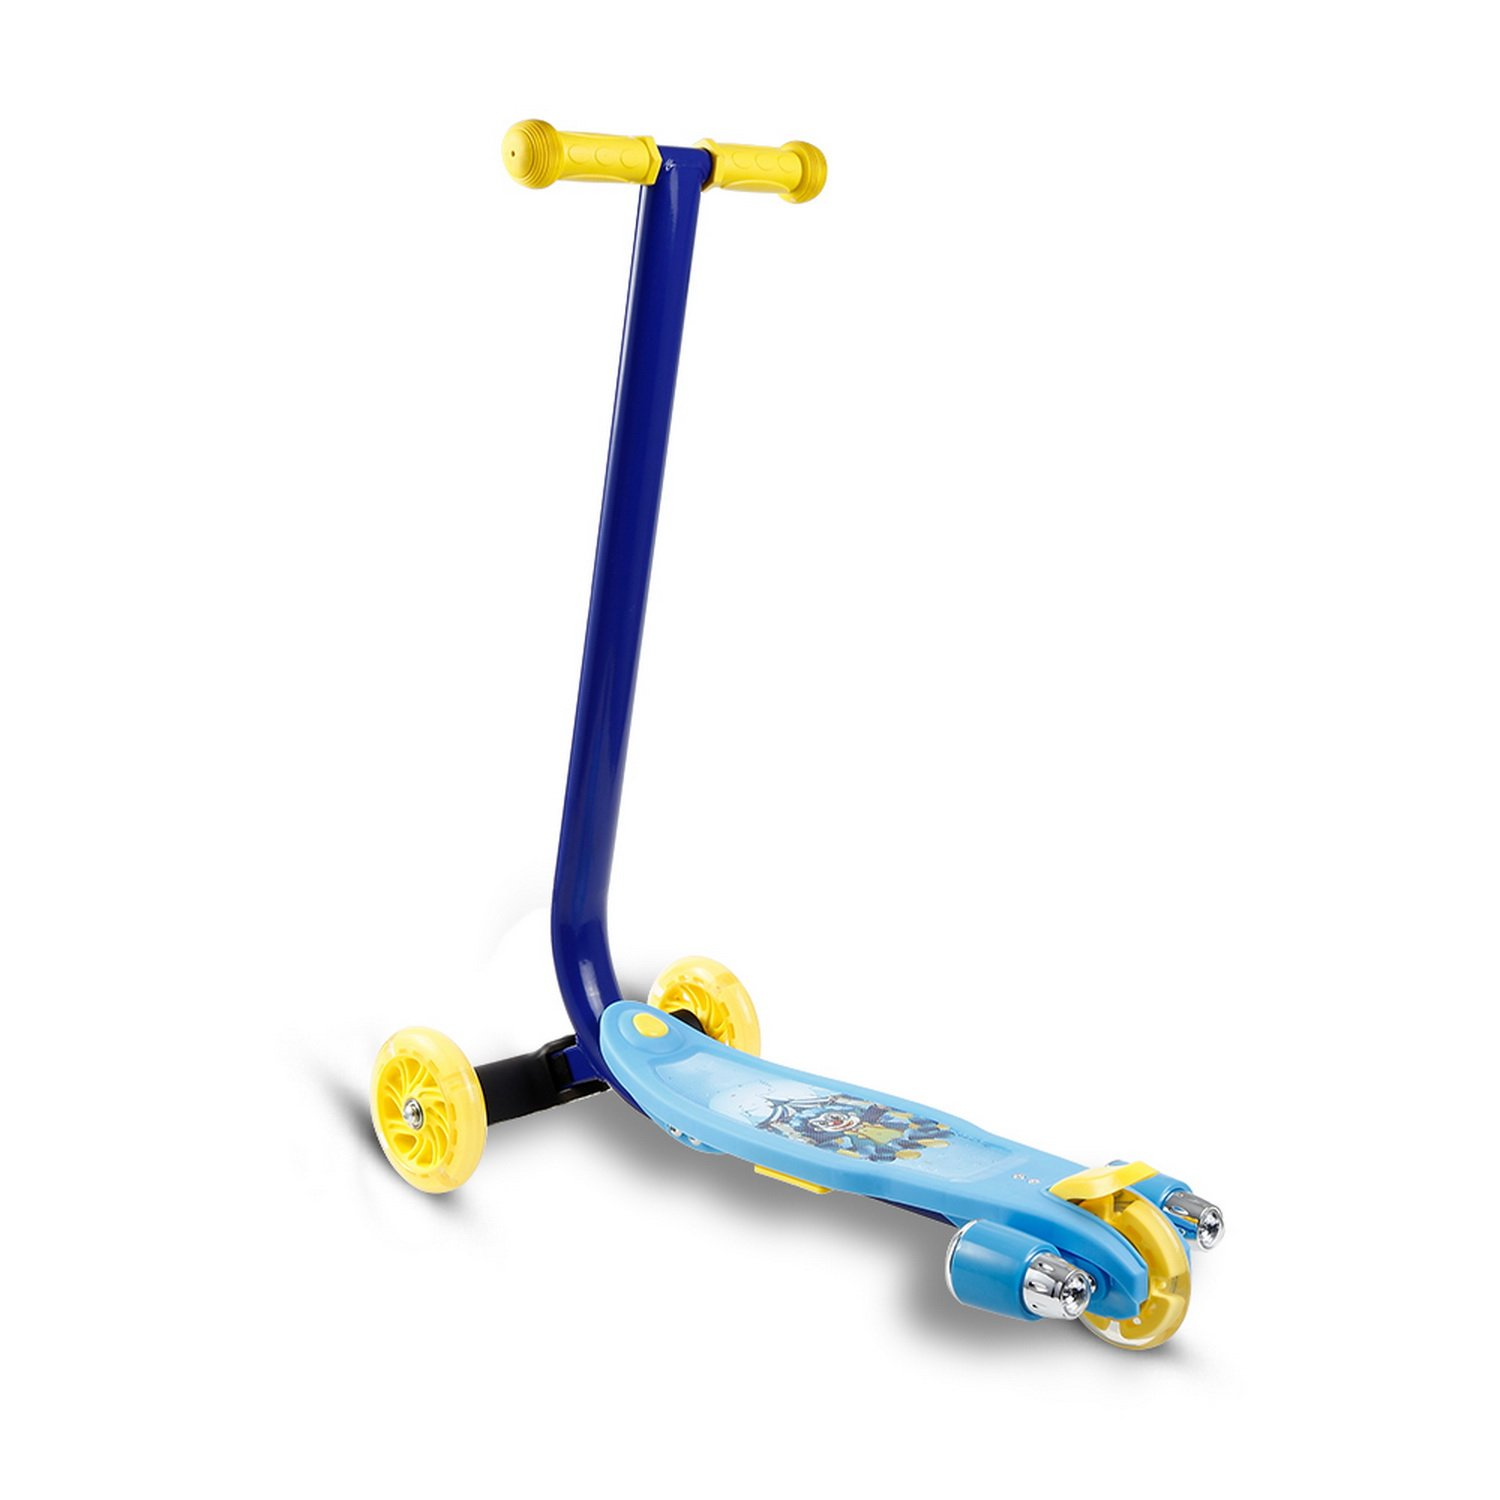 Amazon.com : Rateim 3-Wheel Mini Kick Scooter with LED Flashing Wheels and Music for Kids Boys Girls Toddlers Children Age 3-8 Year Old (Blue) : Sports & ...